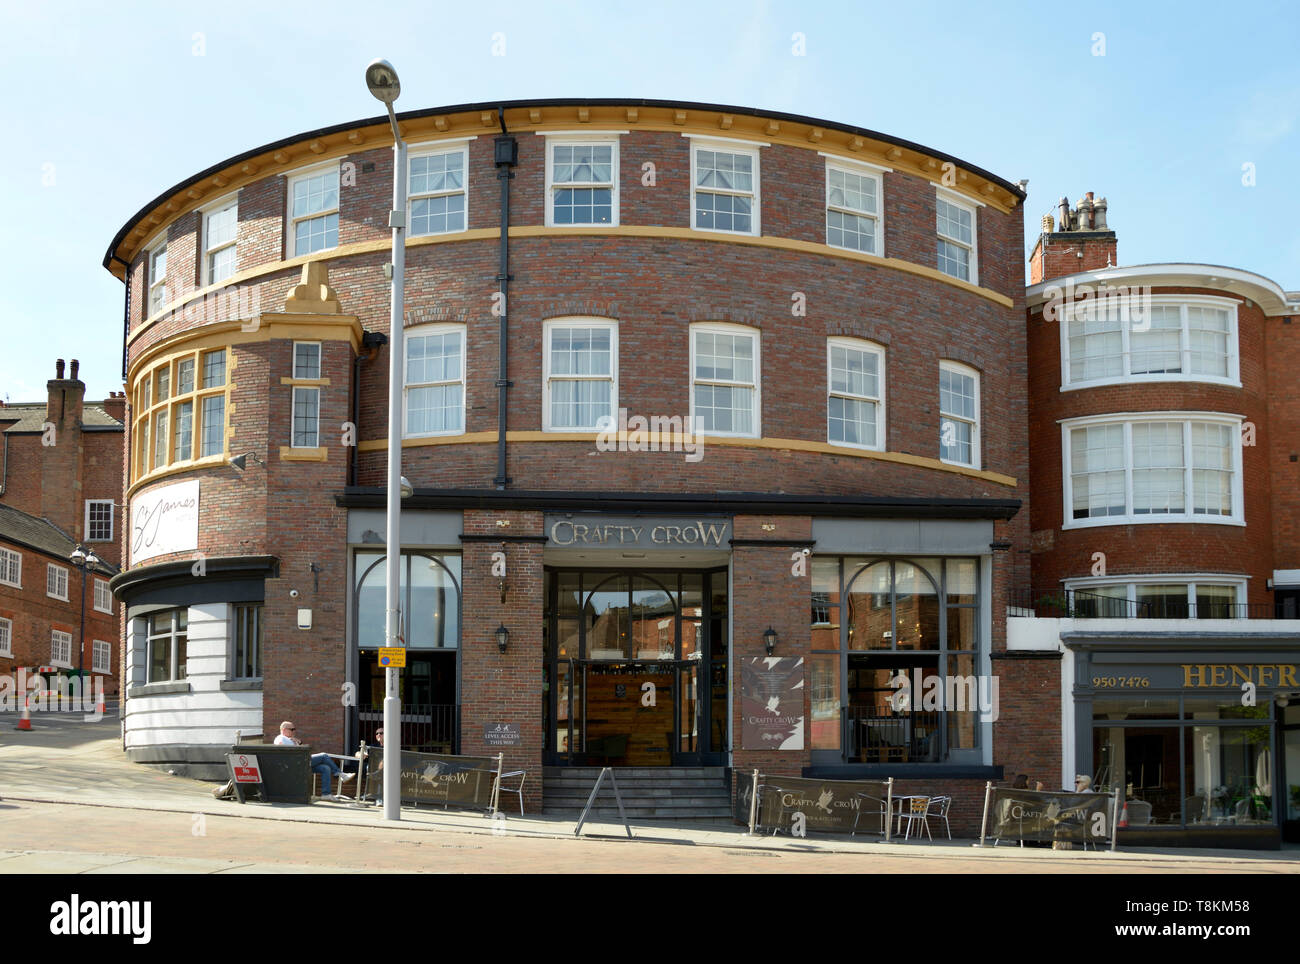 The Crafty Crow Pub, Friar Lane, Nottingham - Stock Image